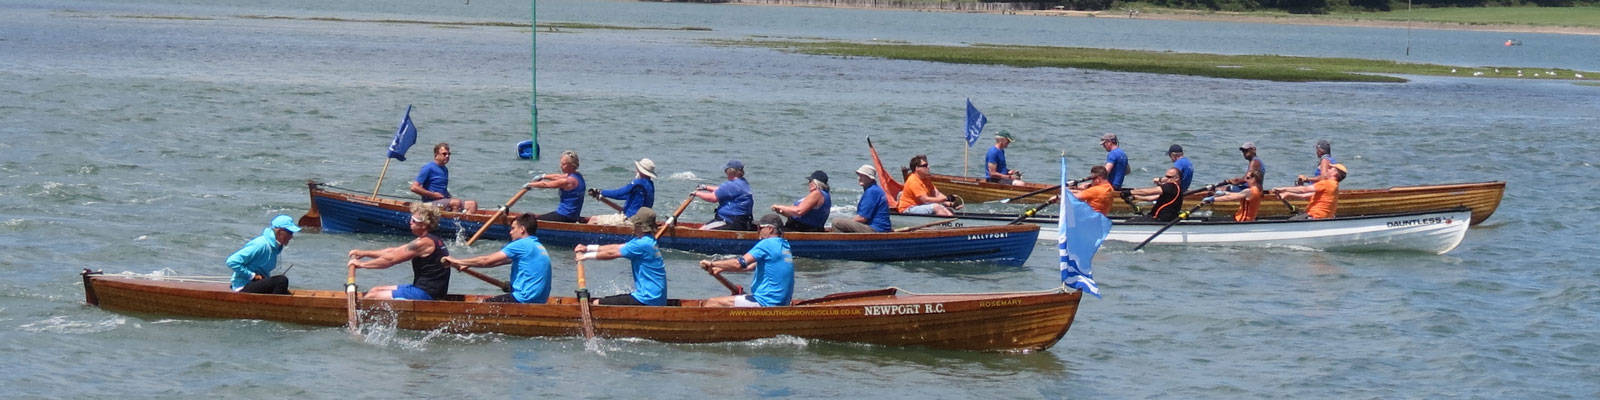 round hayling rowing race